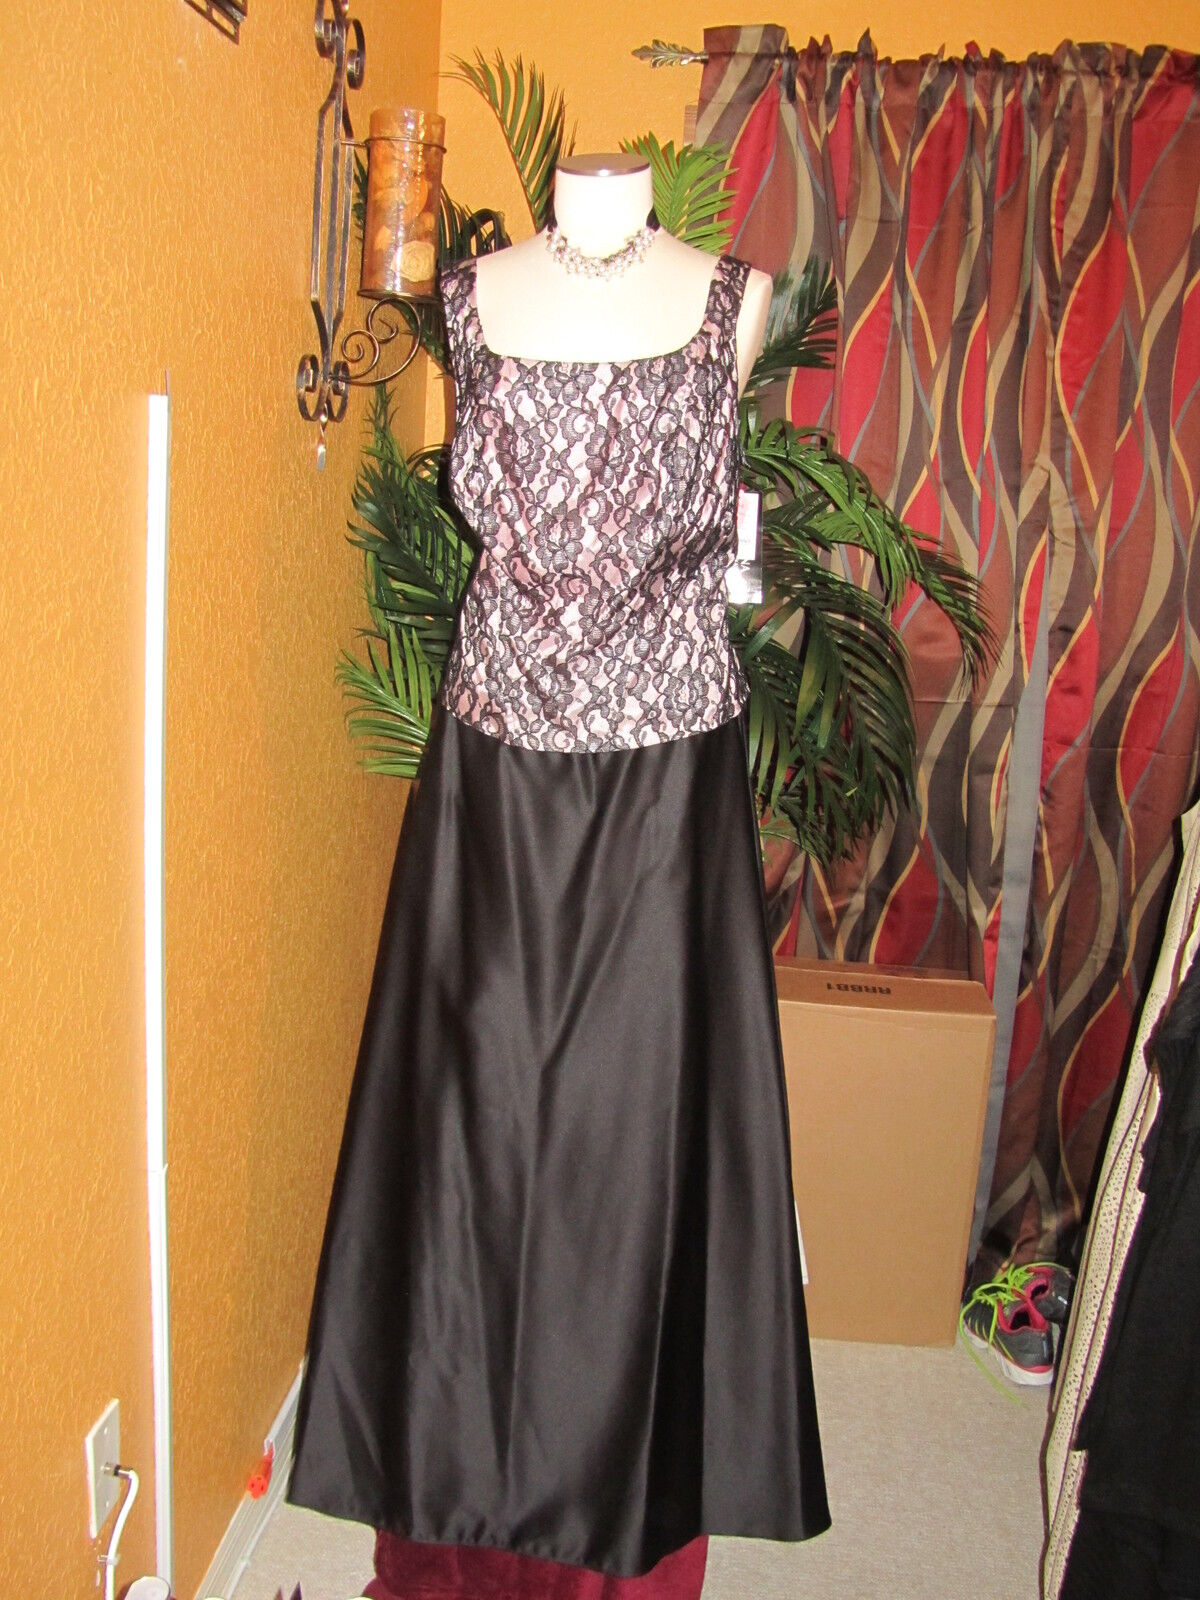 ARIANNA by Rachel Kaye NWT 20W schwarz Rosa lace & satin damen dress long gown